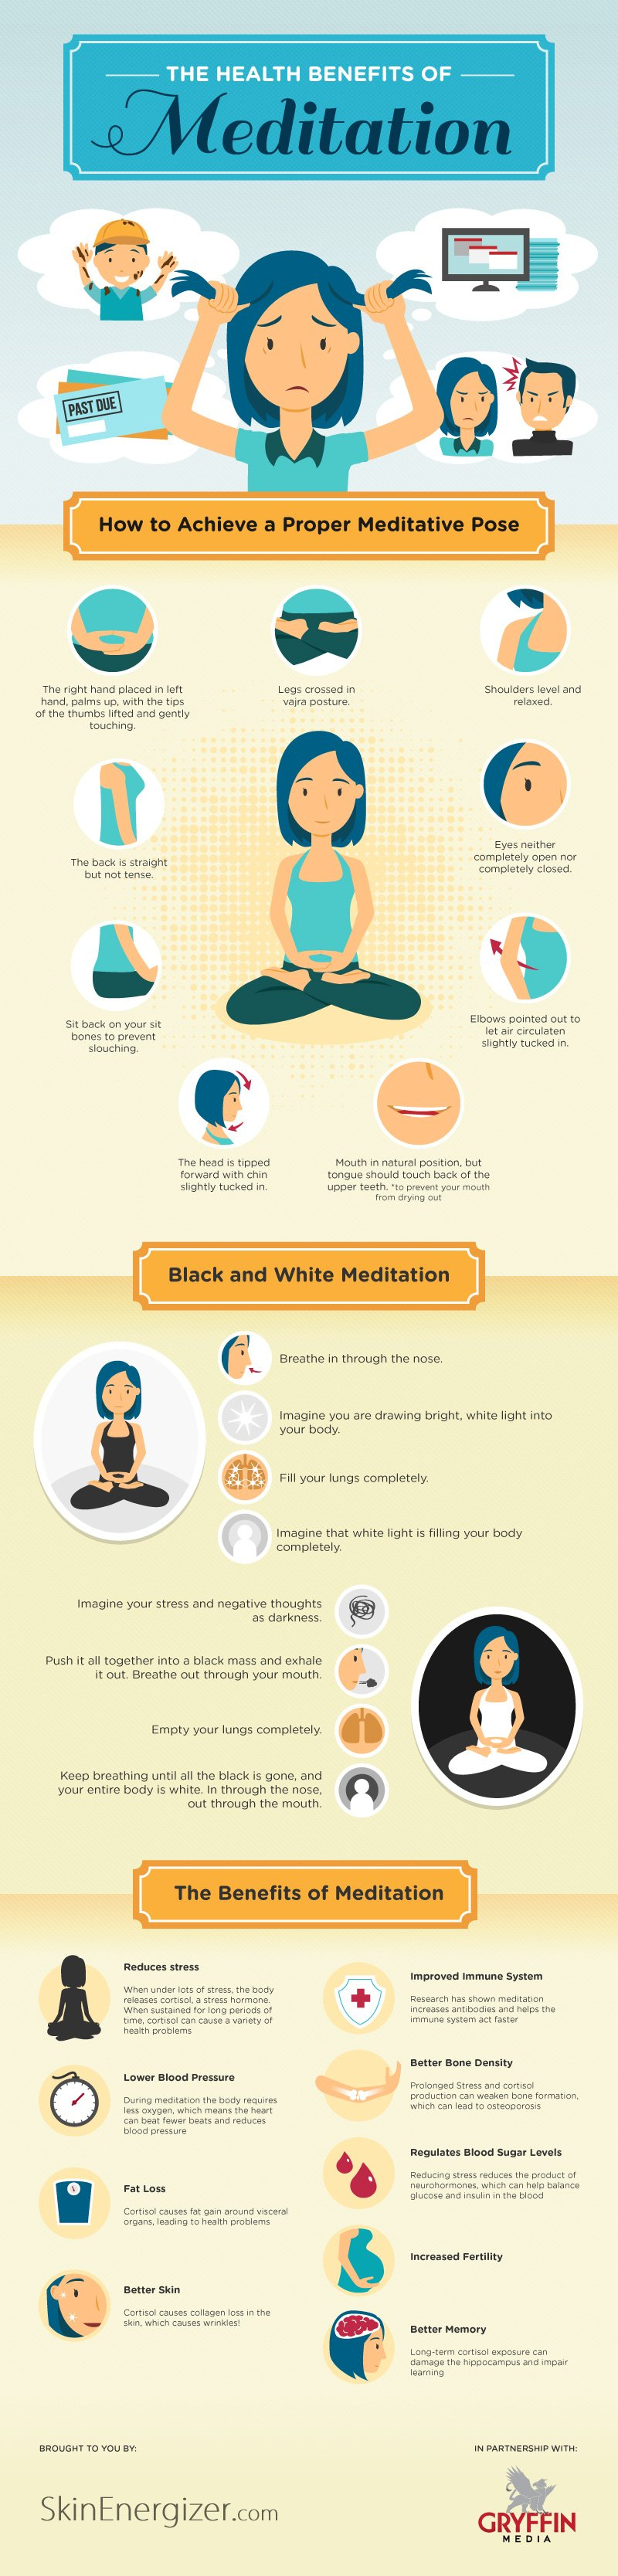 how meditation works and its benefits There is a way to bring some calm and stability back into the mix: meditation  read on for the benefits of a 10 minute meditation.